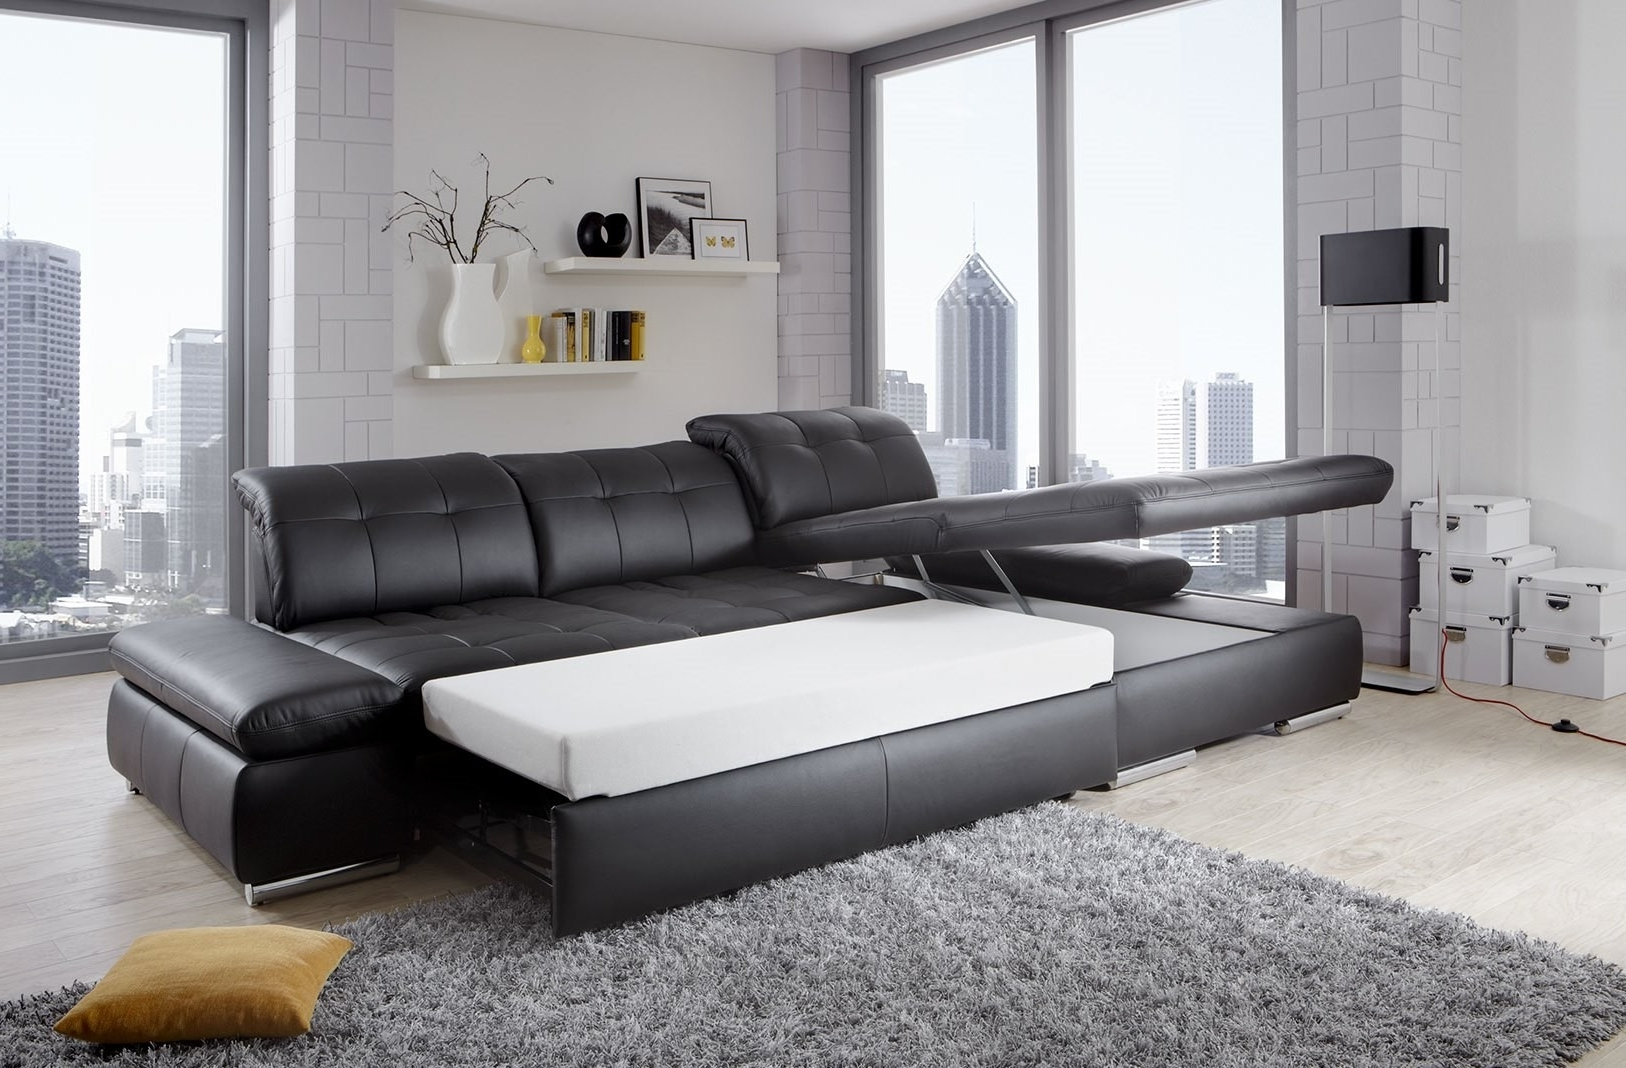 Latest Alpine Sectional Sofa In Black Leather Left Chaise Inside Trinidad And Tobago Sectional Sofas (View 9 of 15)